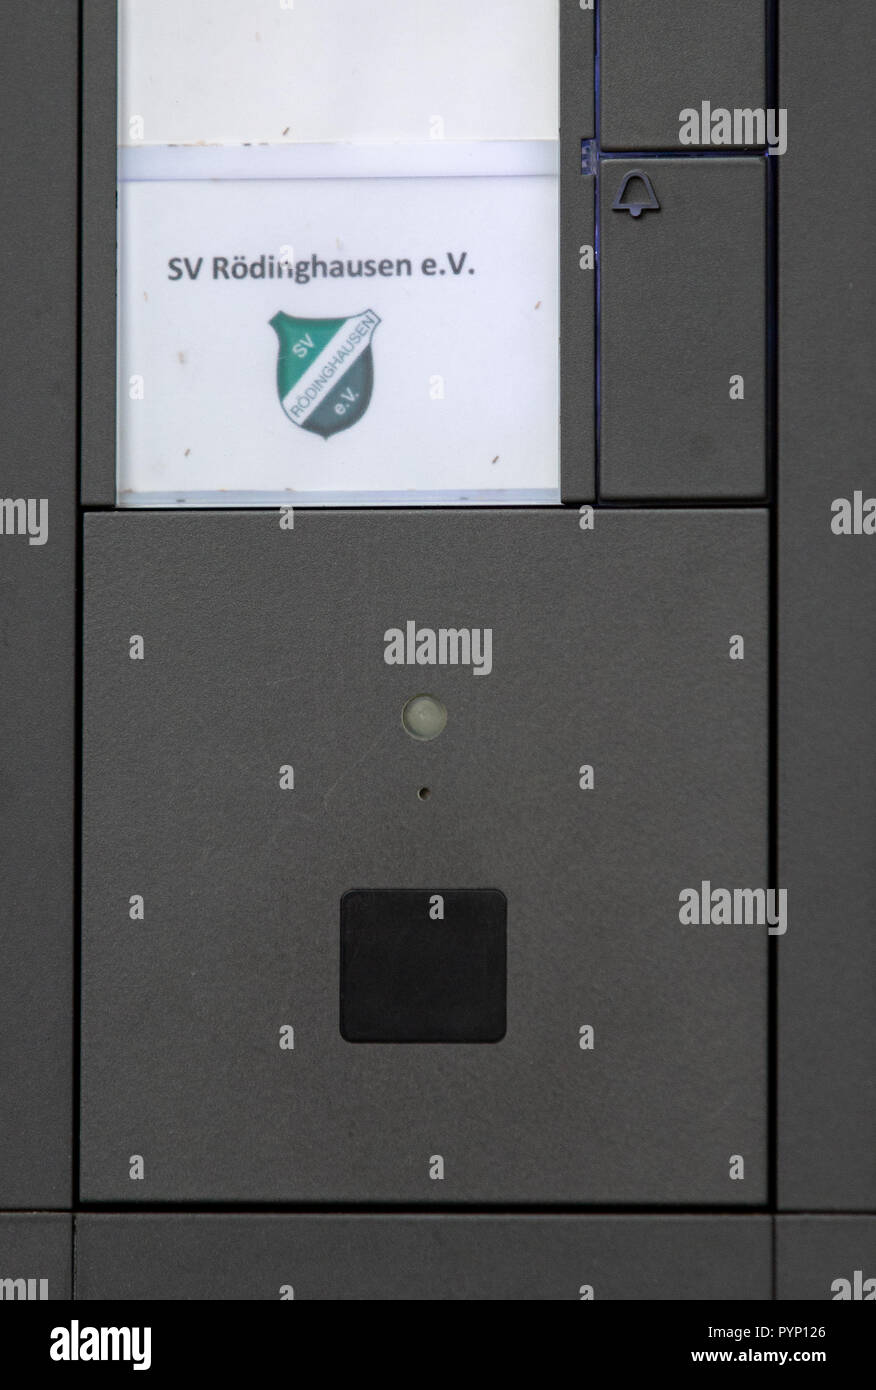 Roedinghausen, Germany. 29th Oct, 2018. Picture of the doorbell of the SV Roedinghausen e.V. office at the Haecker Wiehenstadion. SV Roedinghausen faces off against FC Bayern Munich in the 2nd round of the soccer DFB Cup. The game takes place in Osnabrueck. SV Roedinghausen is currently playing in the football regional league West. The home stadium is in the East Westphalian district of Herford in North Rhine-Westphalia. Credit: Friso Gentsch/dpa/Alamy Live News Stock Photo